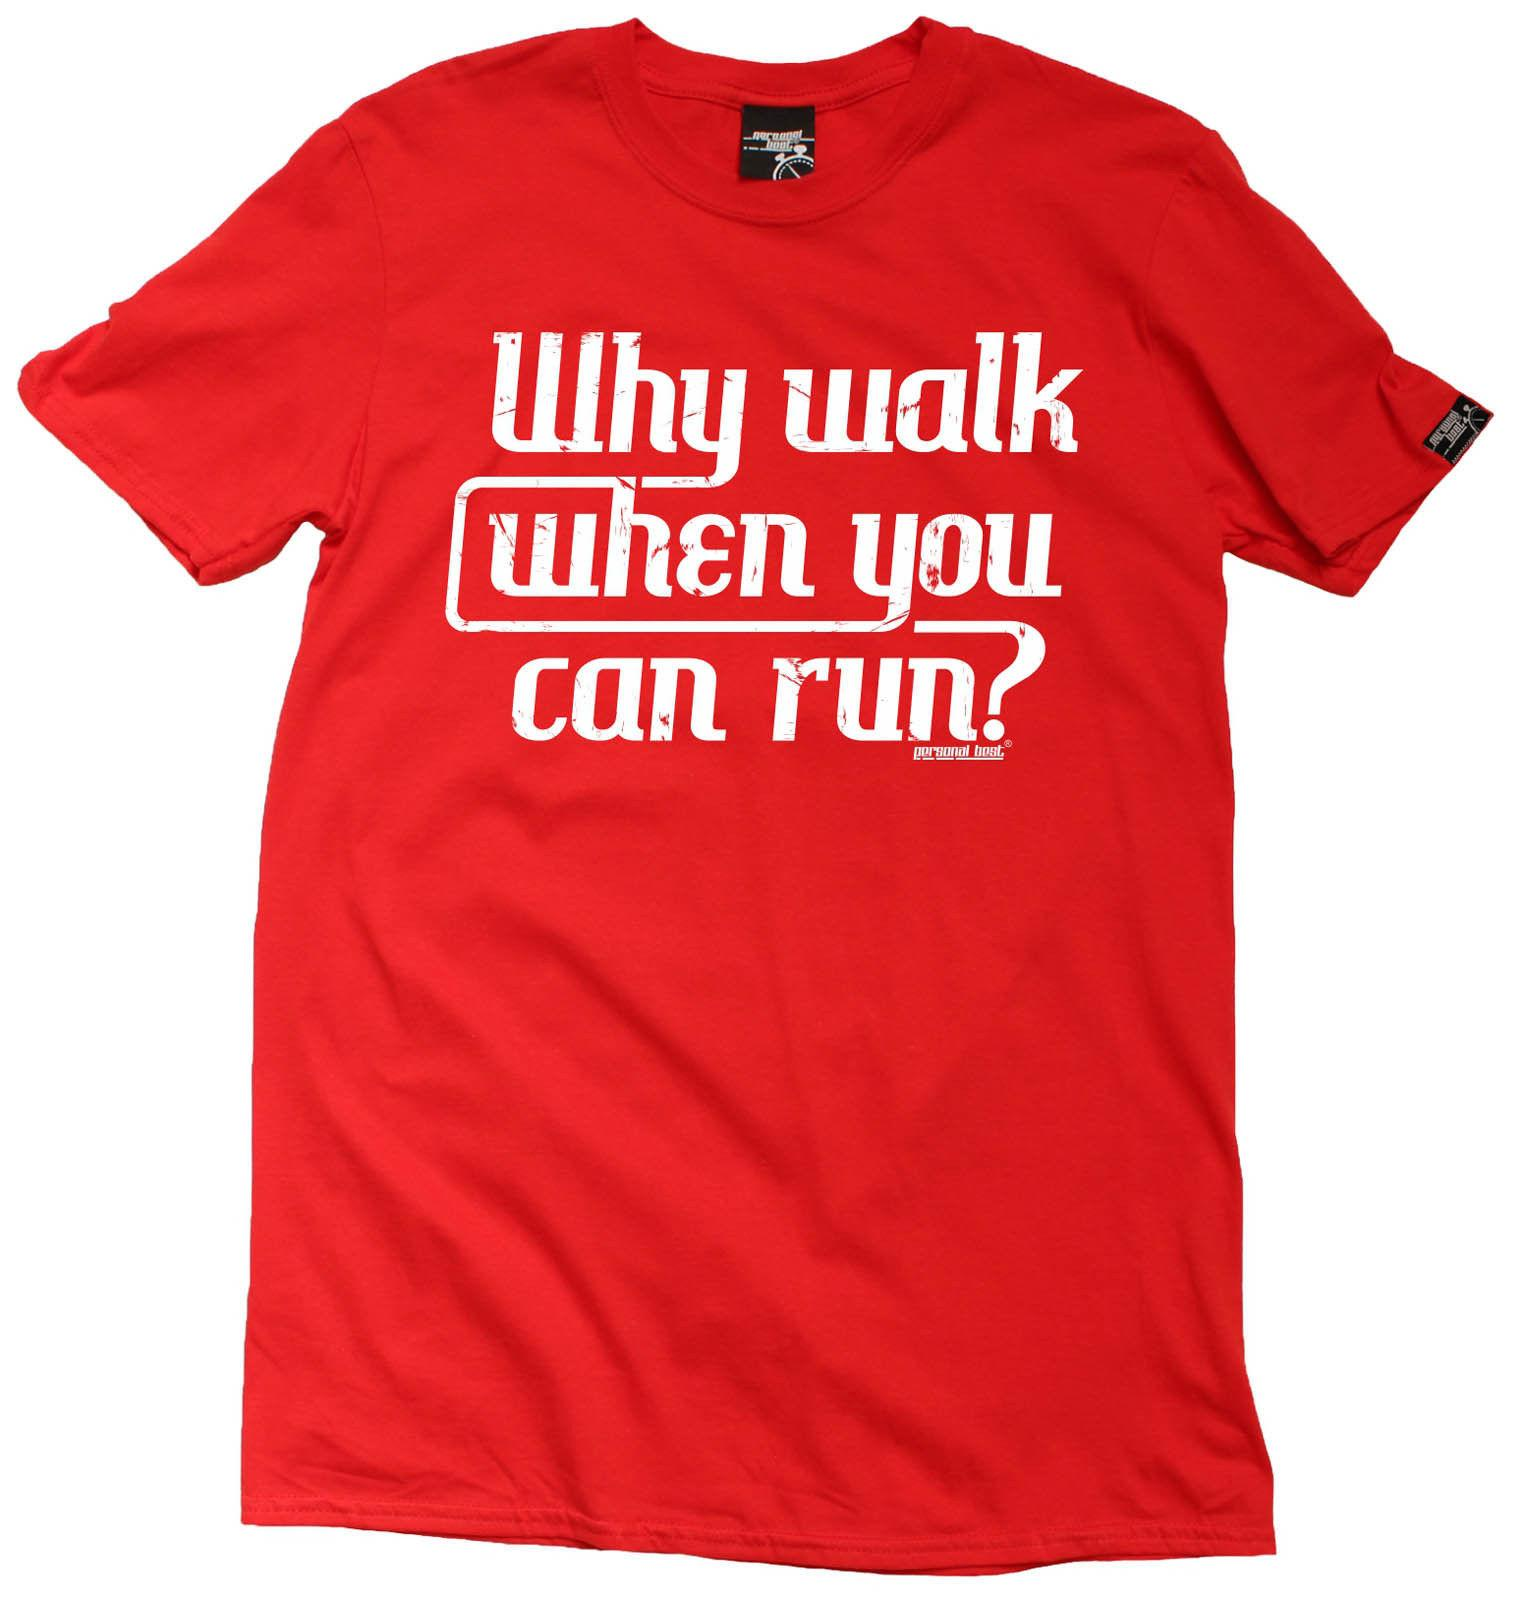 Why Walk When You Can Run MENS T SHIRT Birthday Funny Fashion Running Runner Shirts Design Online From Alltrends 1101